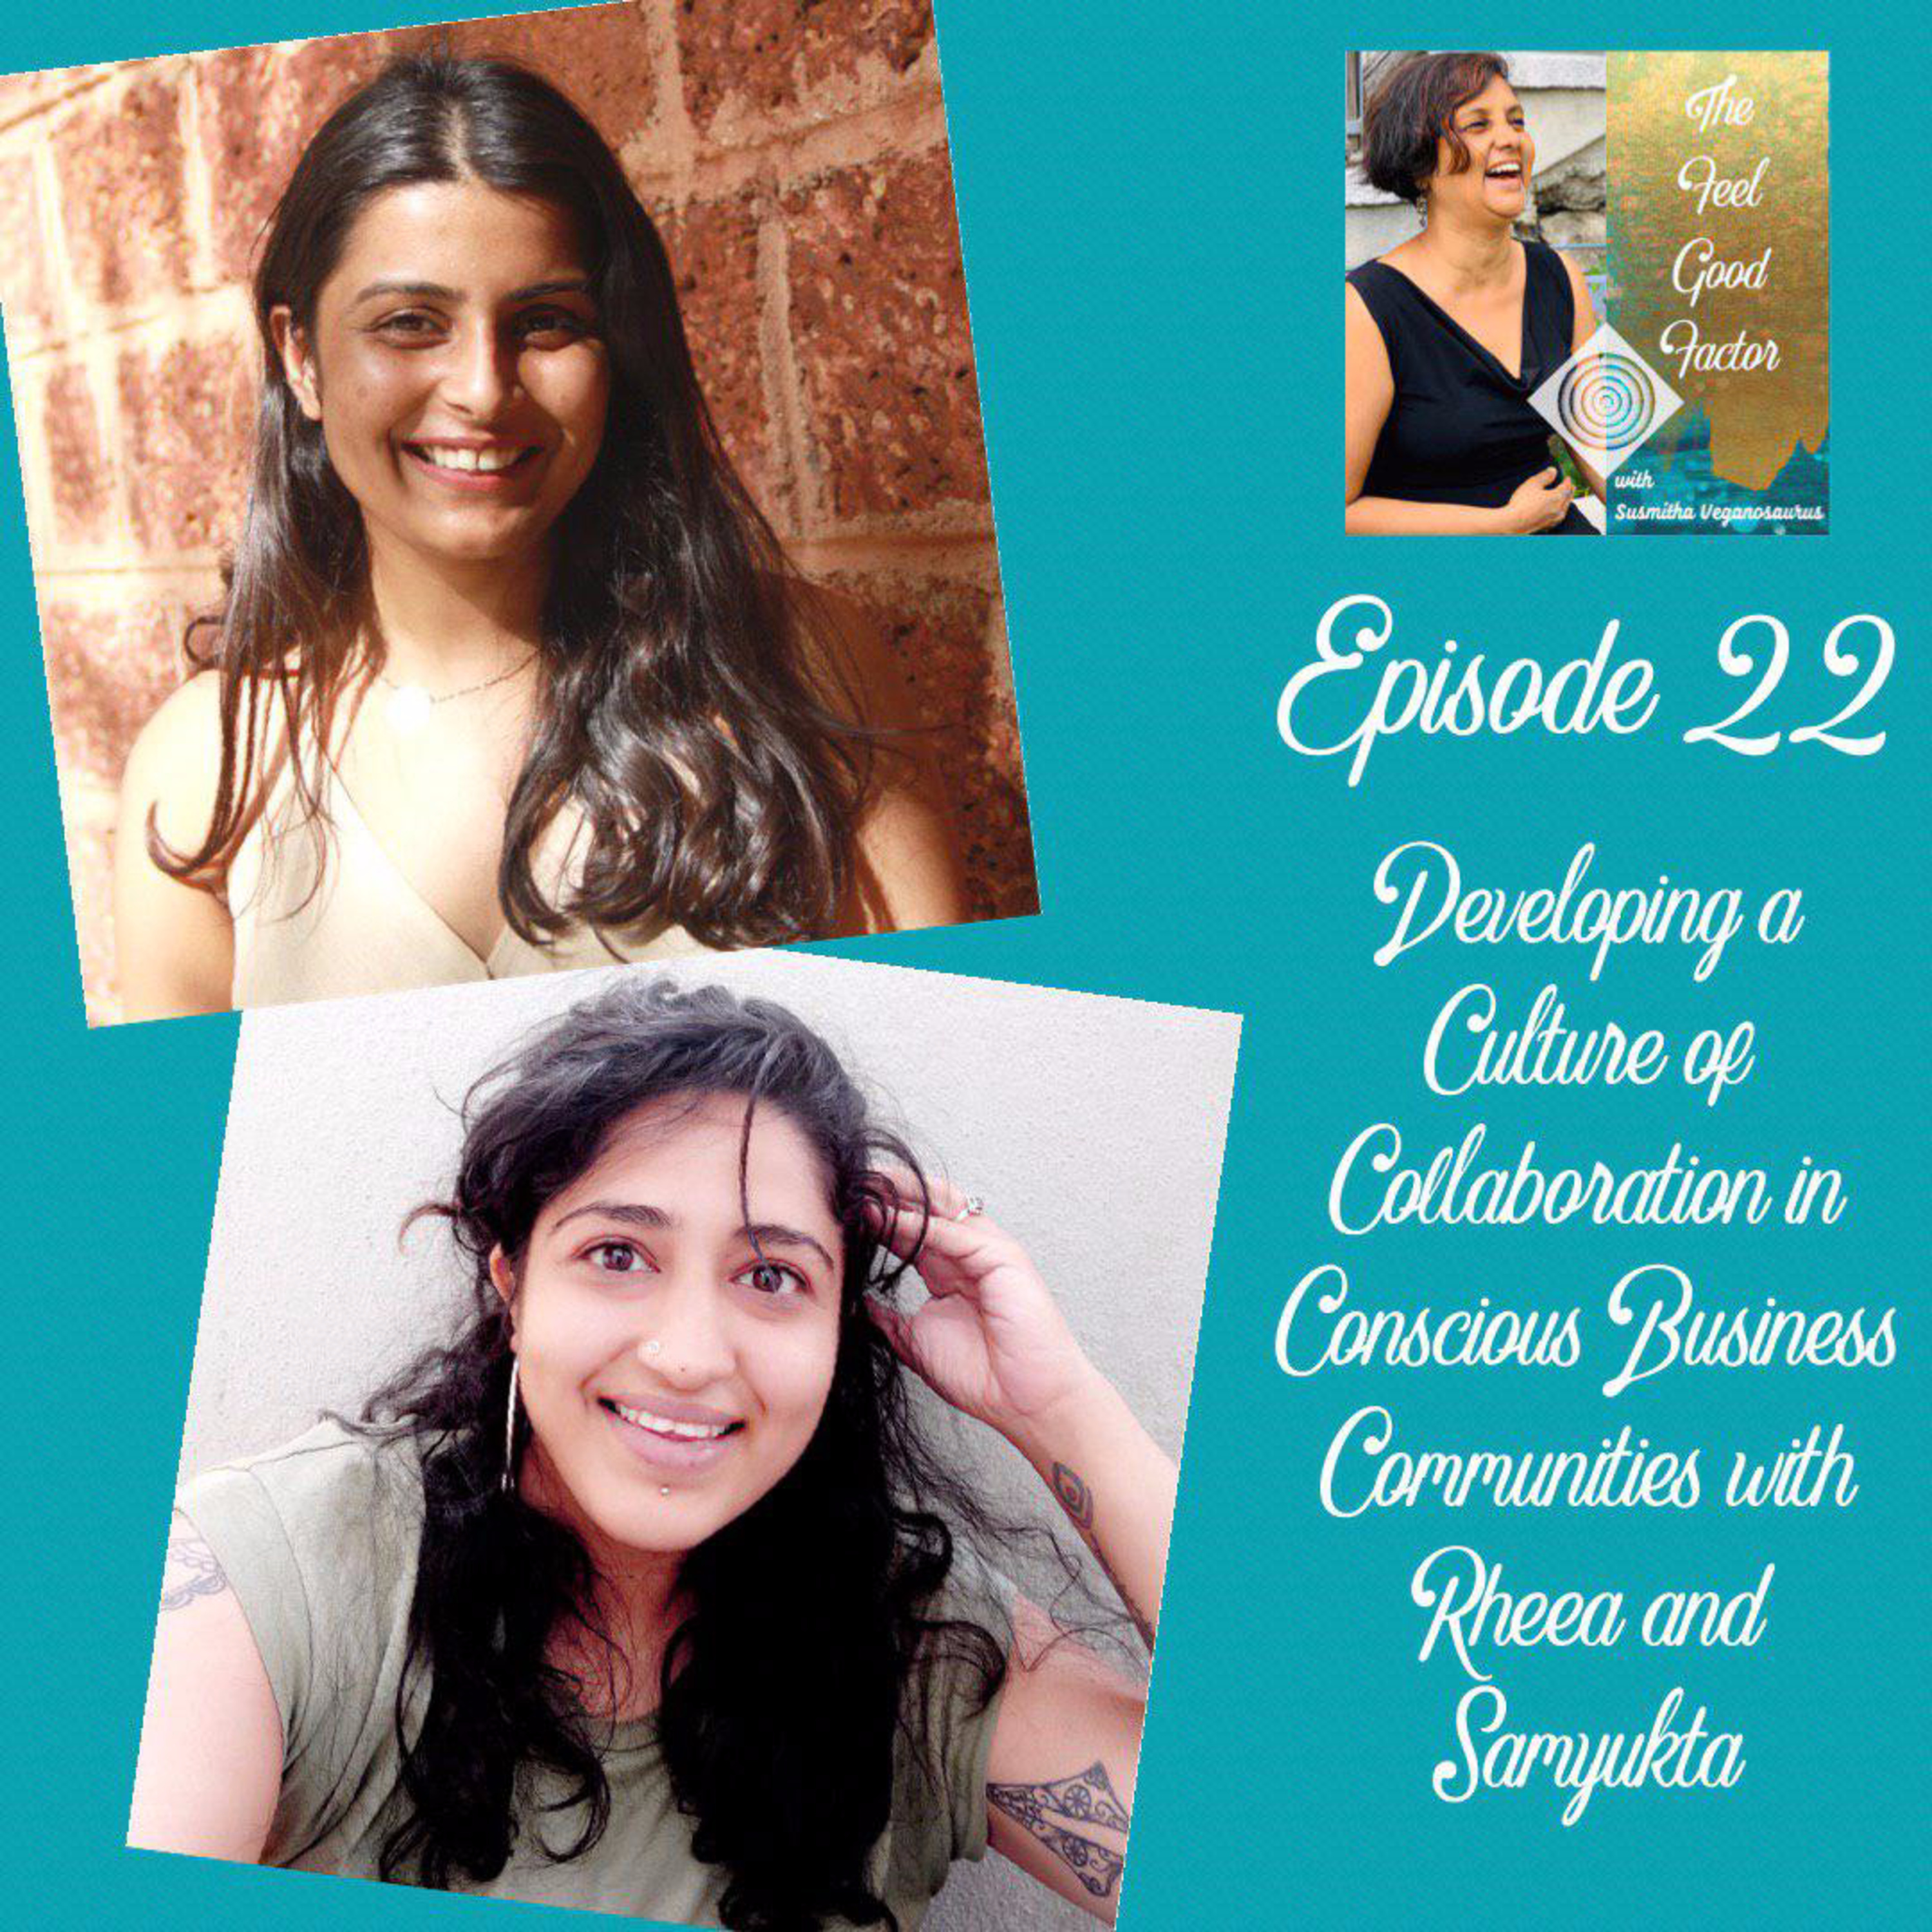 22: Developing a Culture of Collaboration in Conscious Business Communities with Rheea and Samyukta